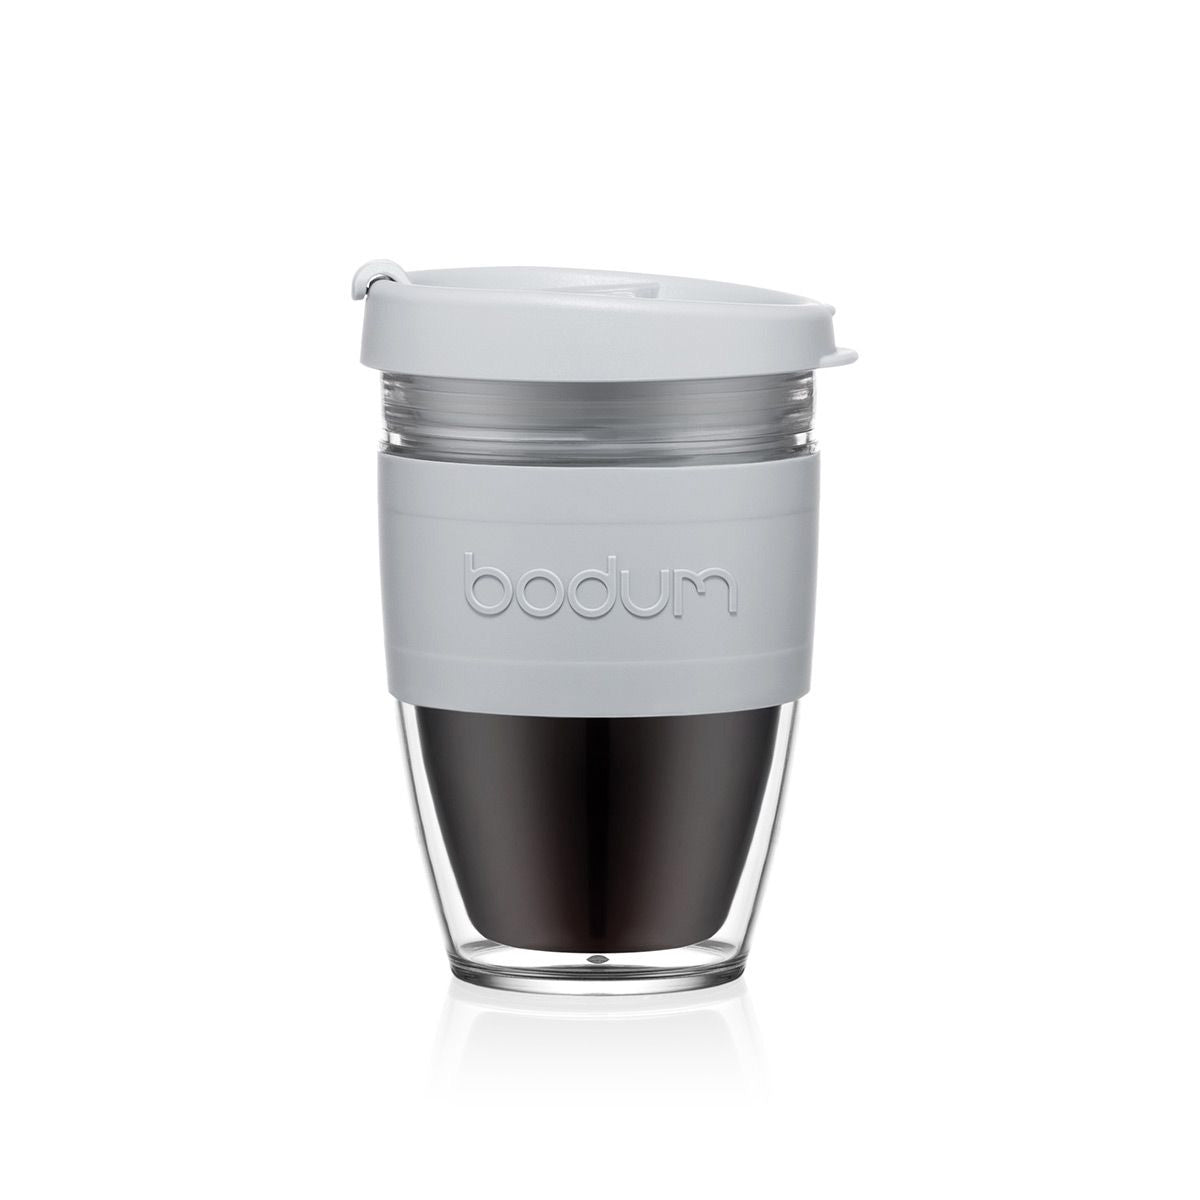 Bodum Joycup Travel Mug 8oz - Shadow Grey - NEW 2020 Collection